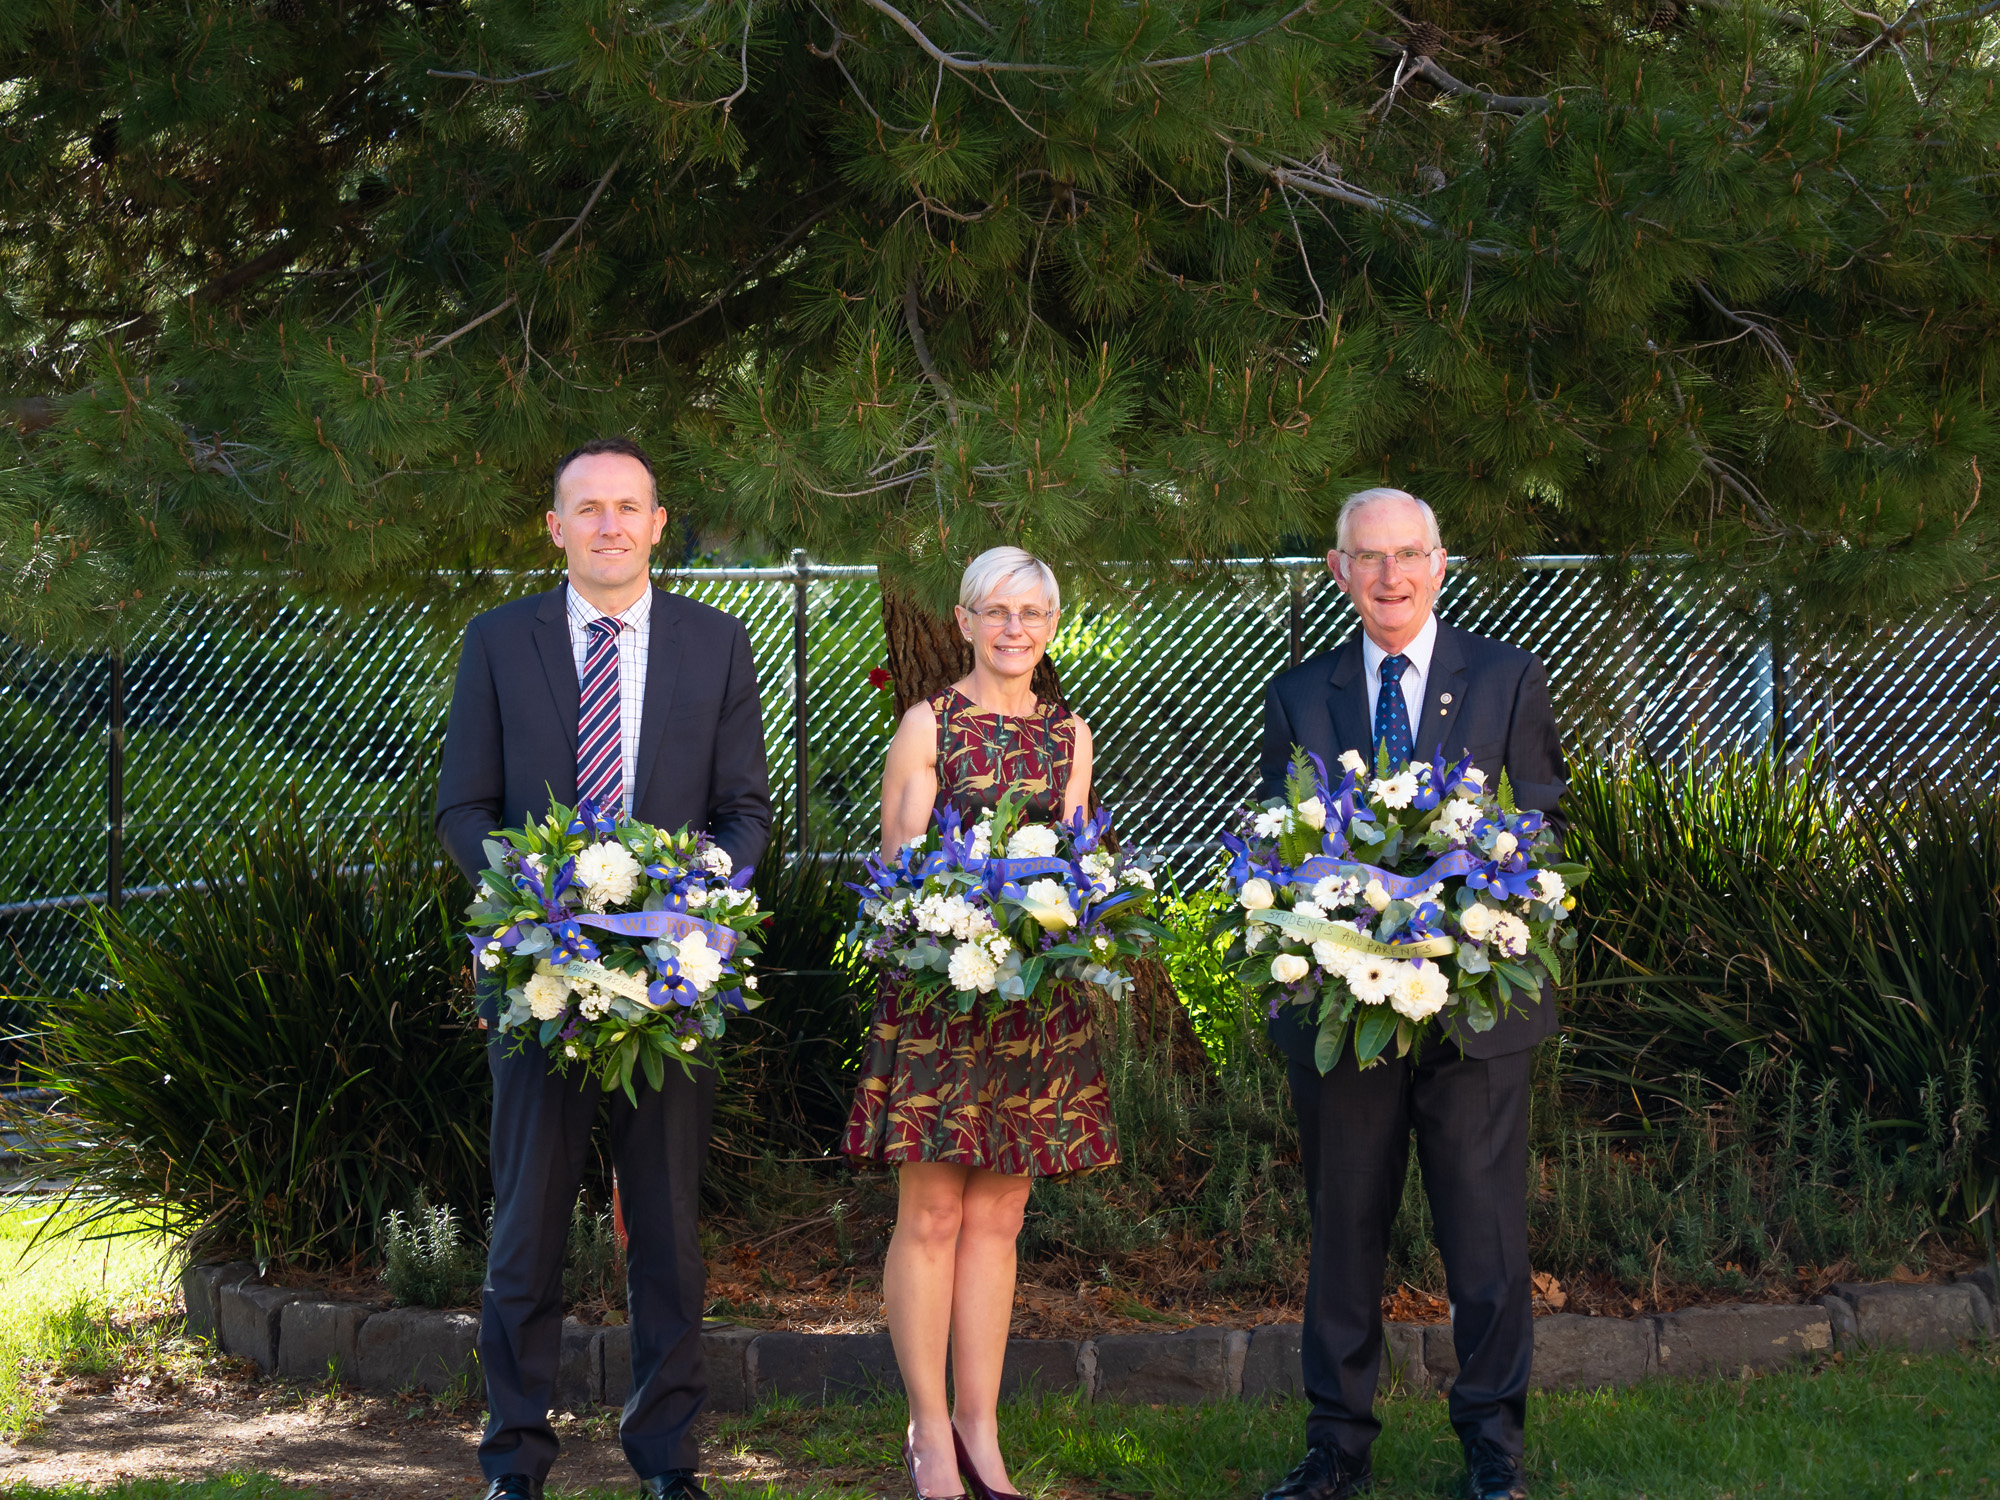 Mark Dewar, Susan Ogden and Alan Collier stand under the lone pine tree at Dandenong High School with their ANZAC wreaths.